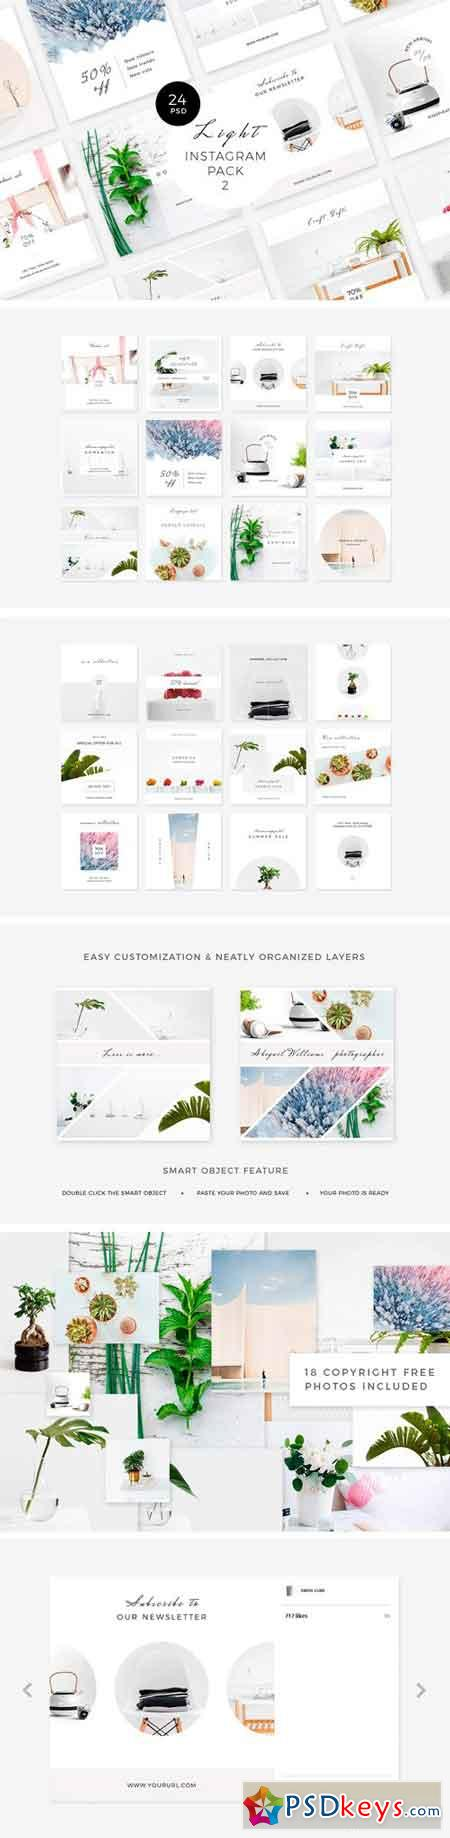 Light Instagram Pack 2 1922550